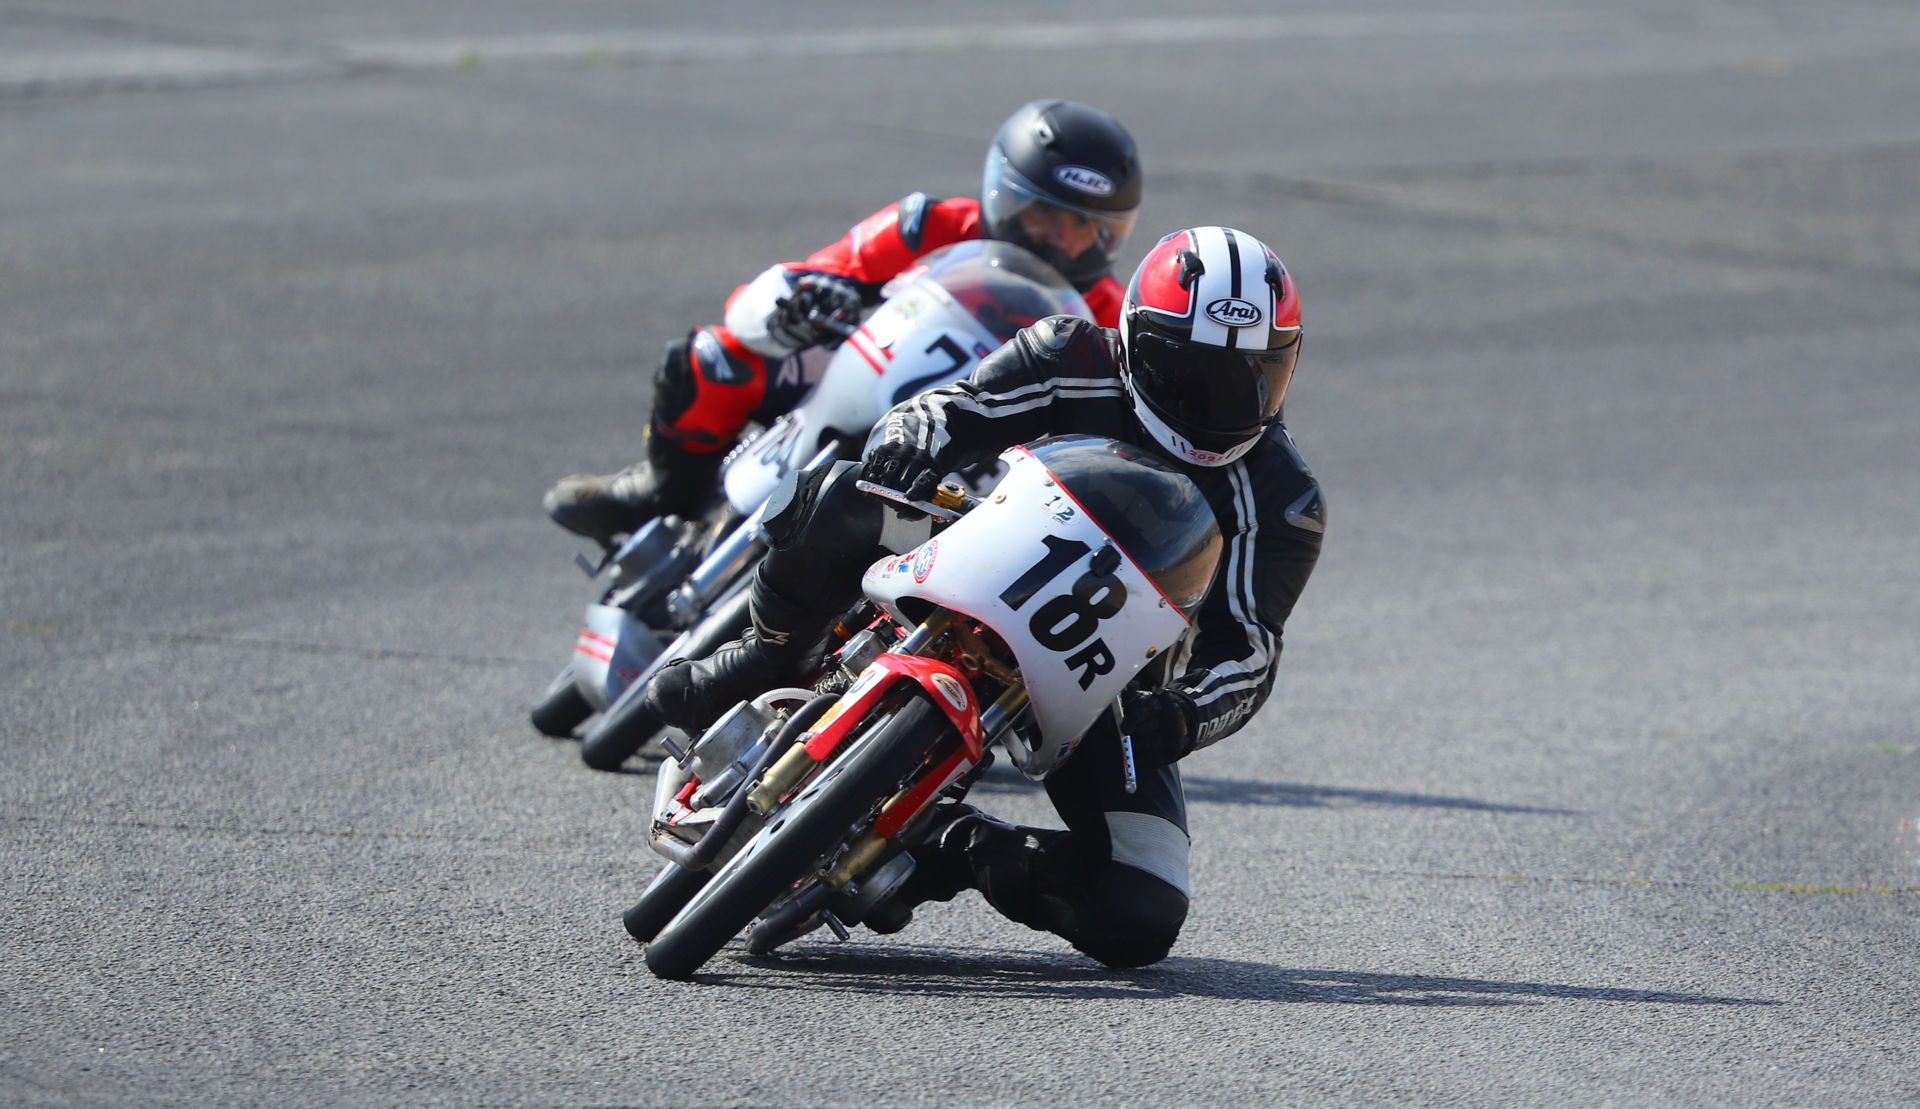 Gabriel Droetti (18R) leading another AHRMA rider during a 200GP race at Willow Springs International Raceway. Photo by etechphoto.com, courtesy AHRMA.